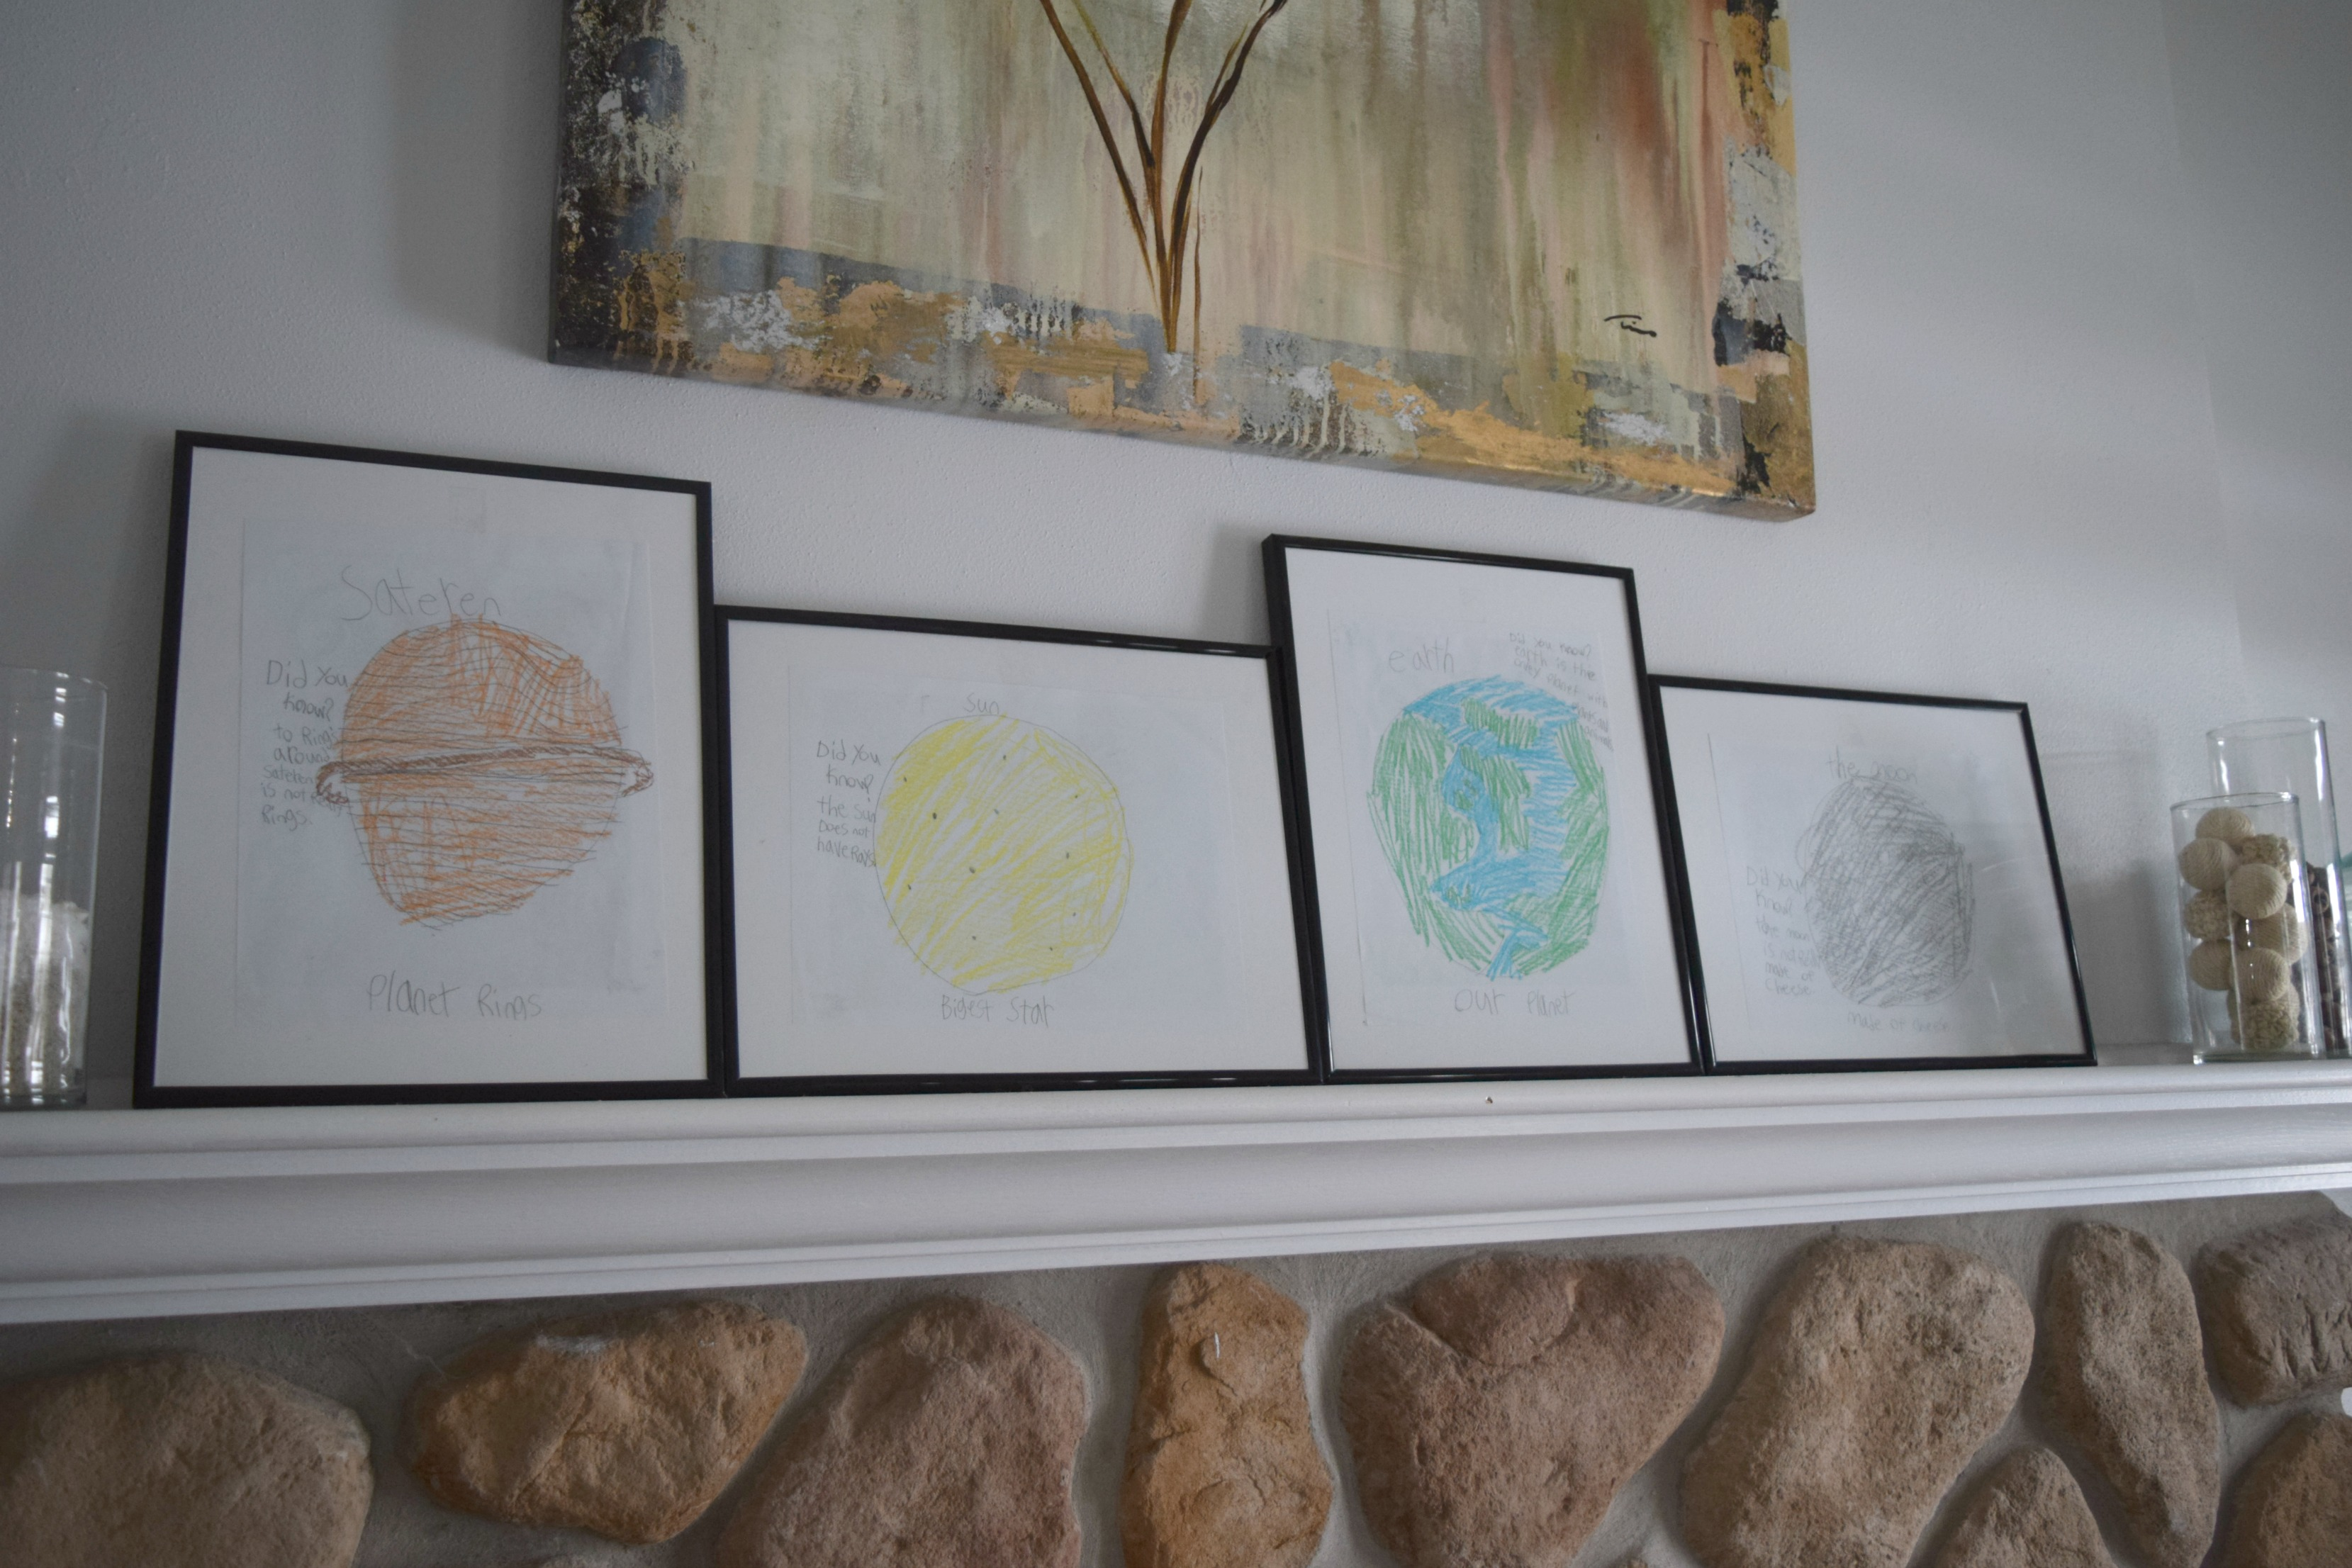 kids drawings of planets